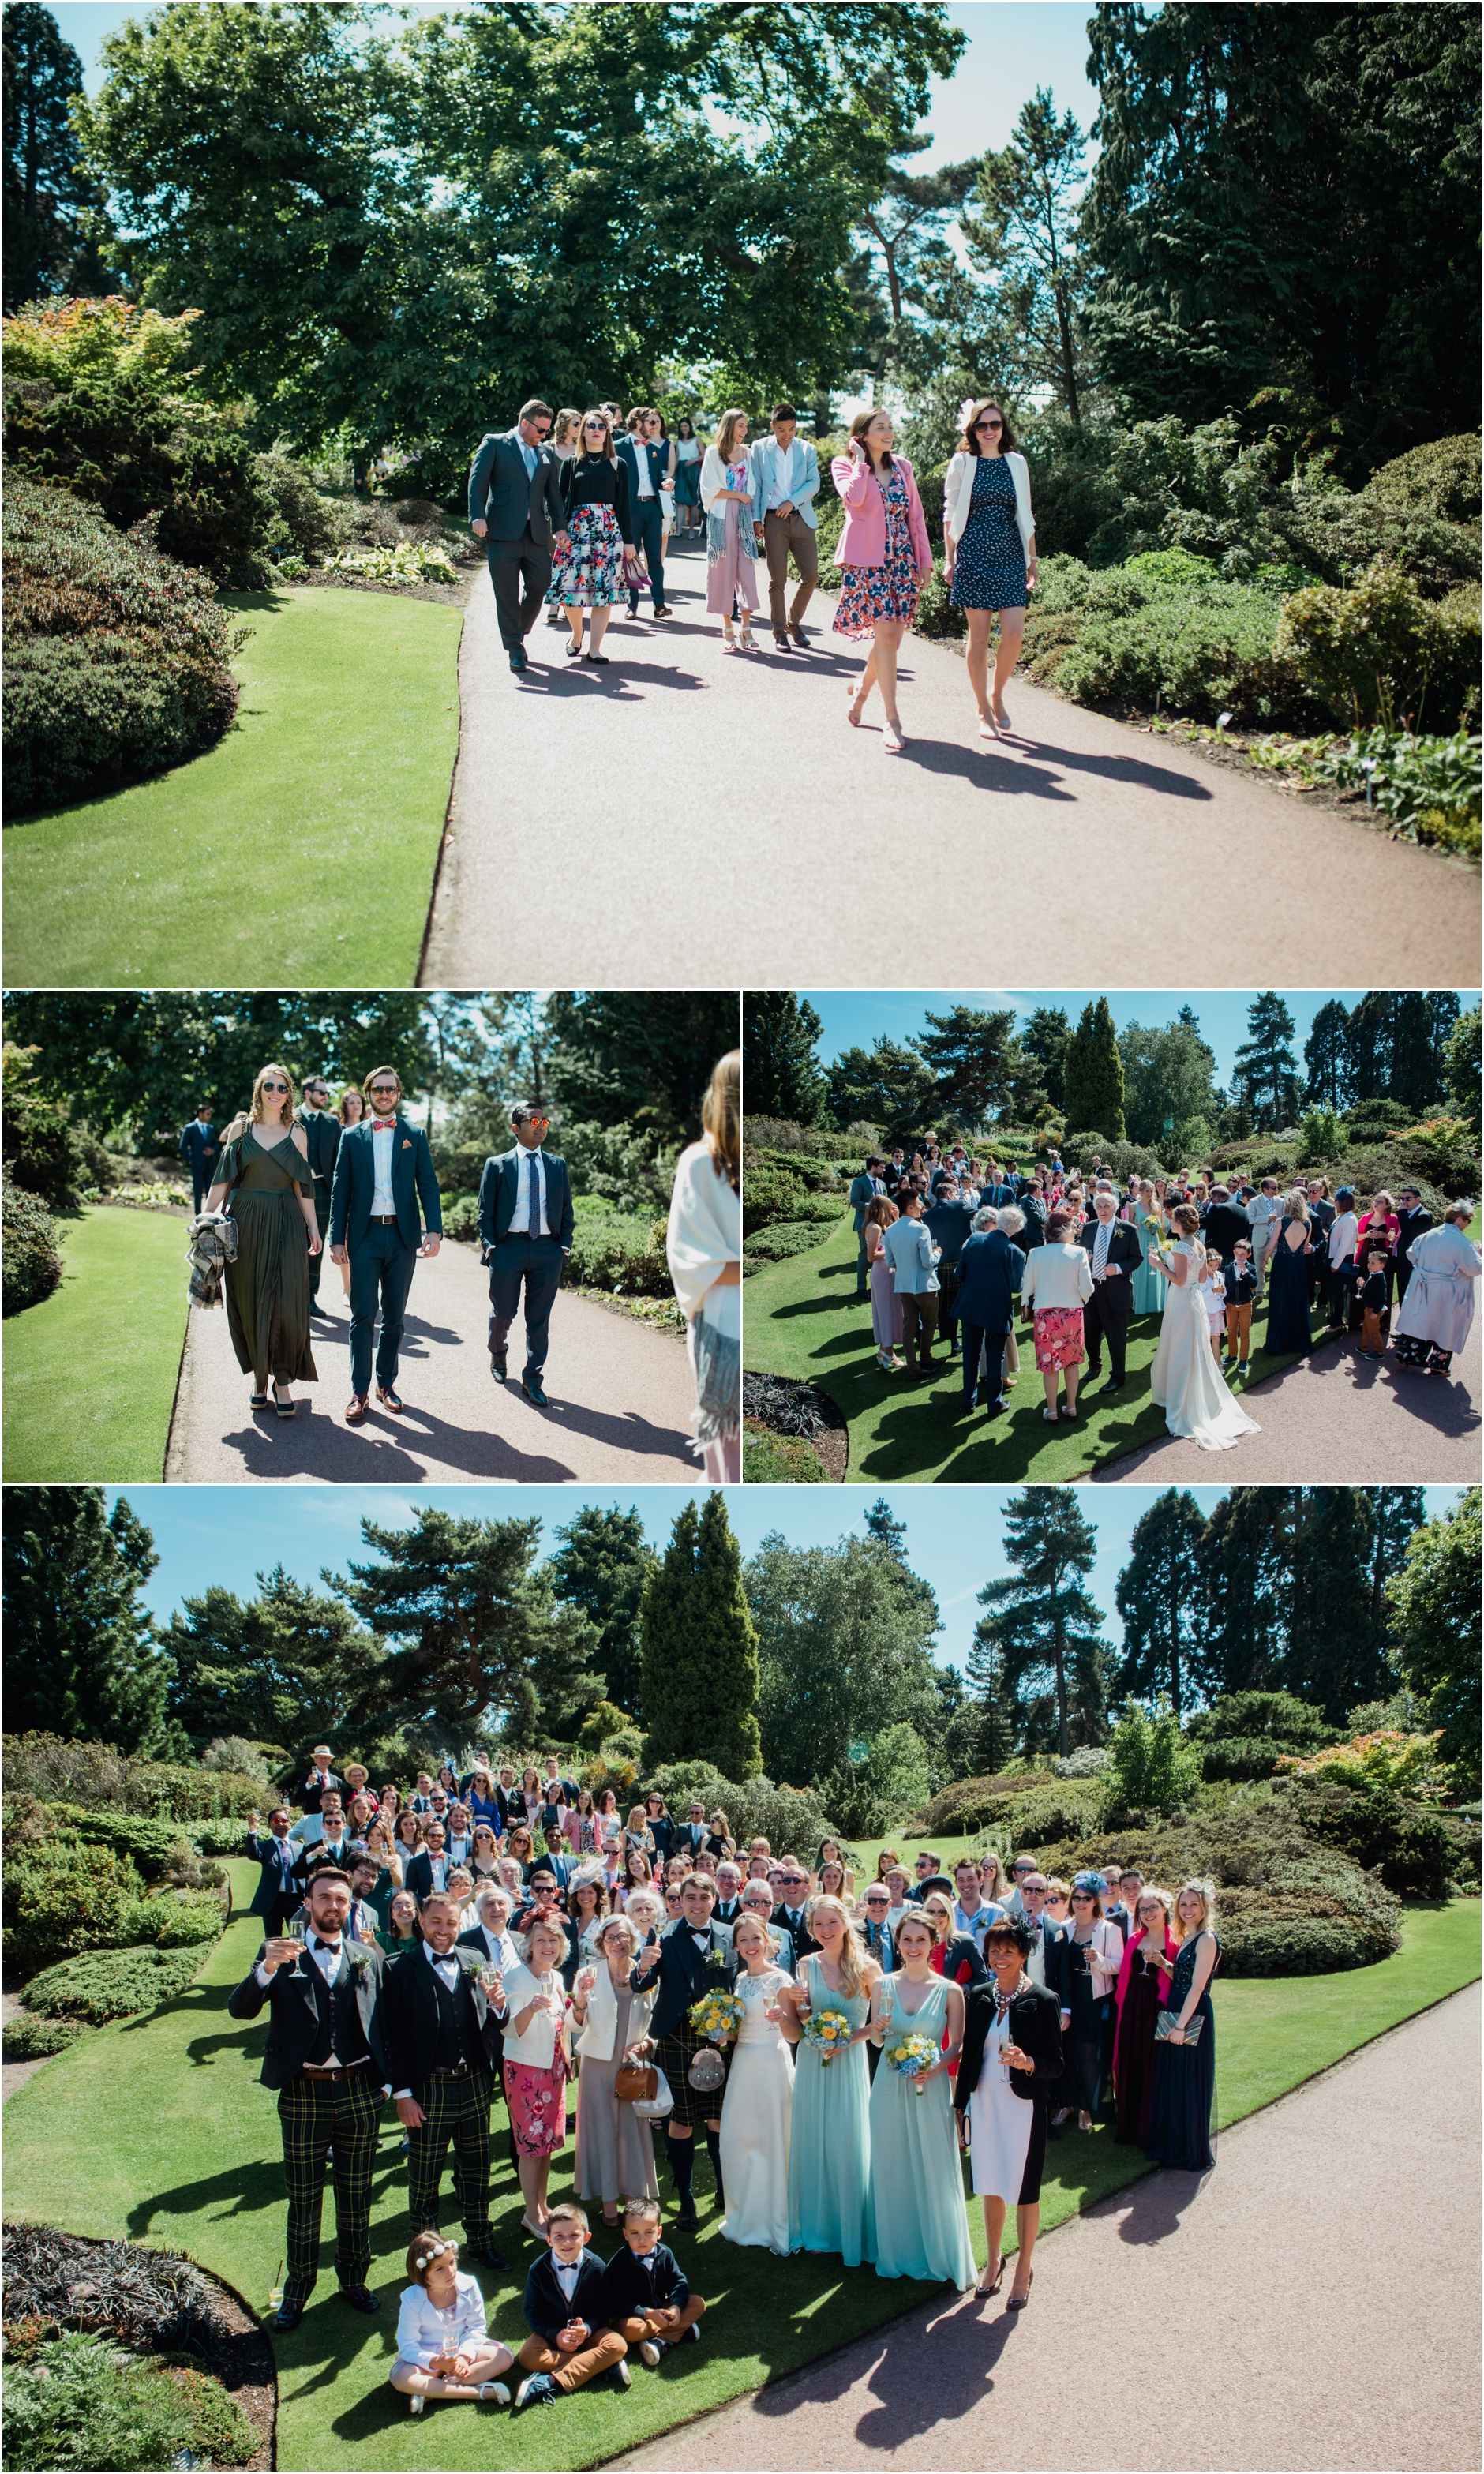 weddings at royal botanical gardens edinburgh